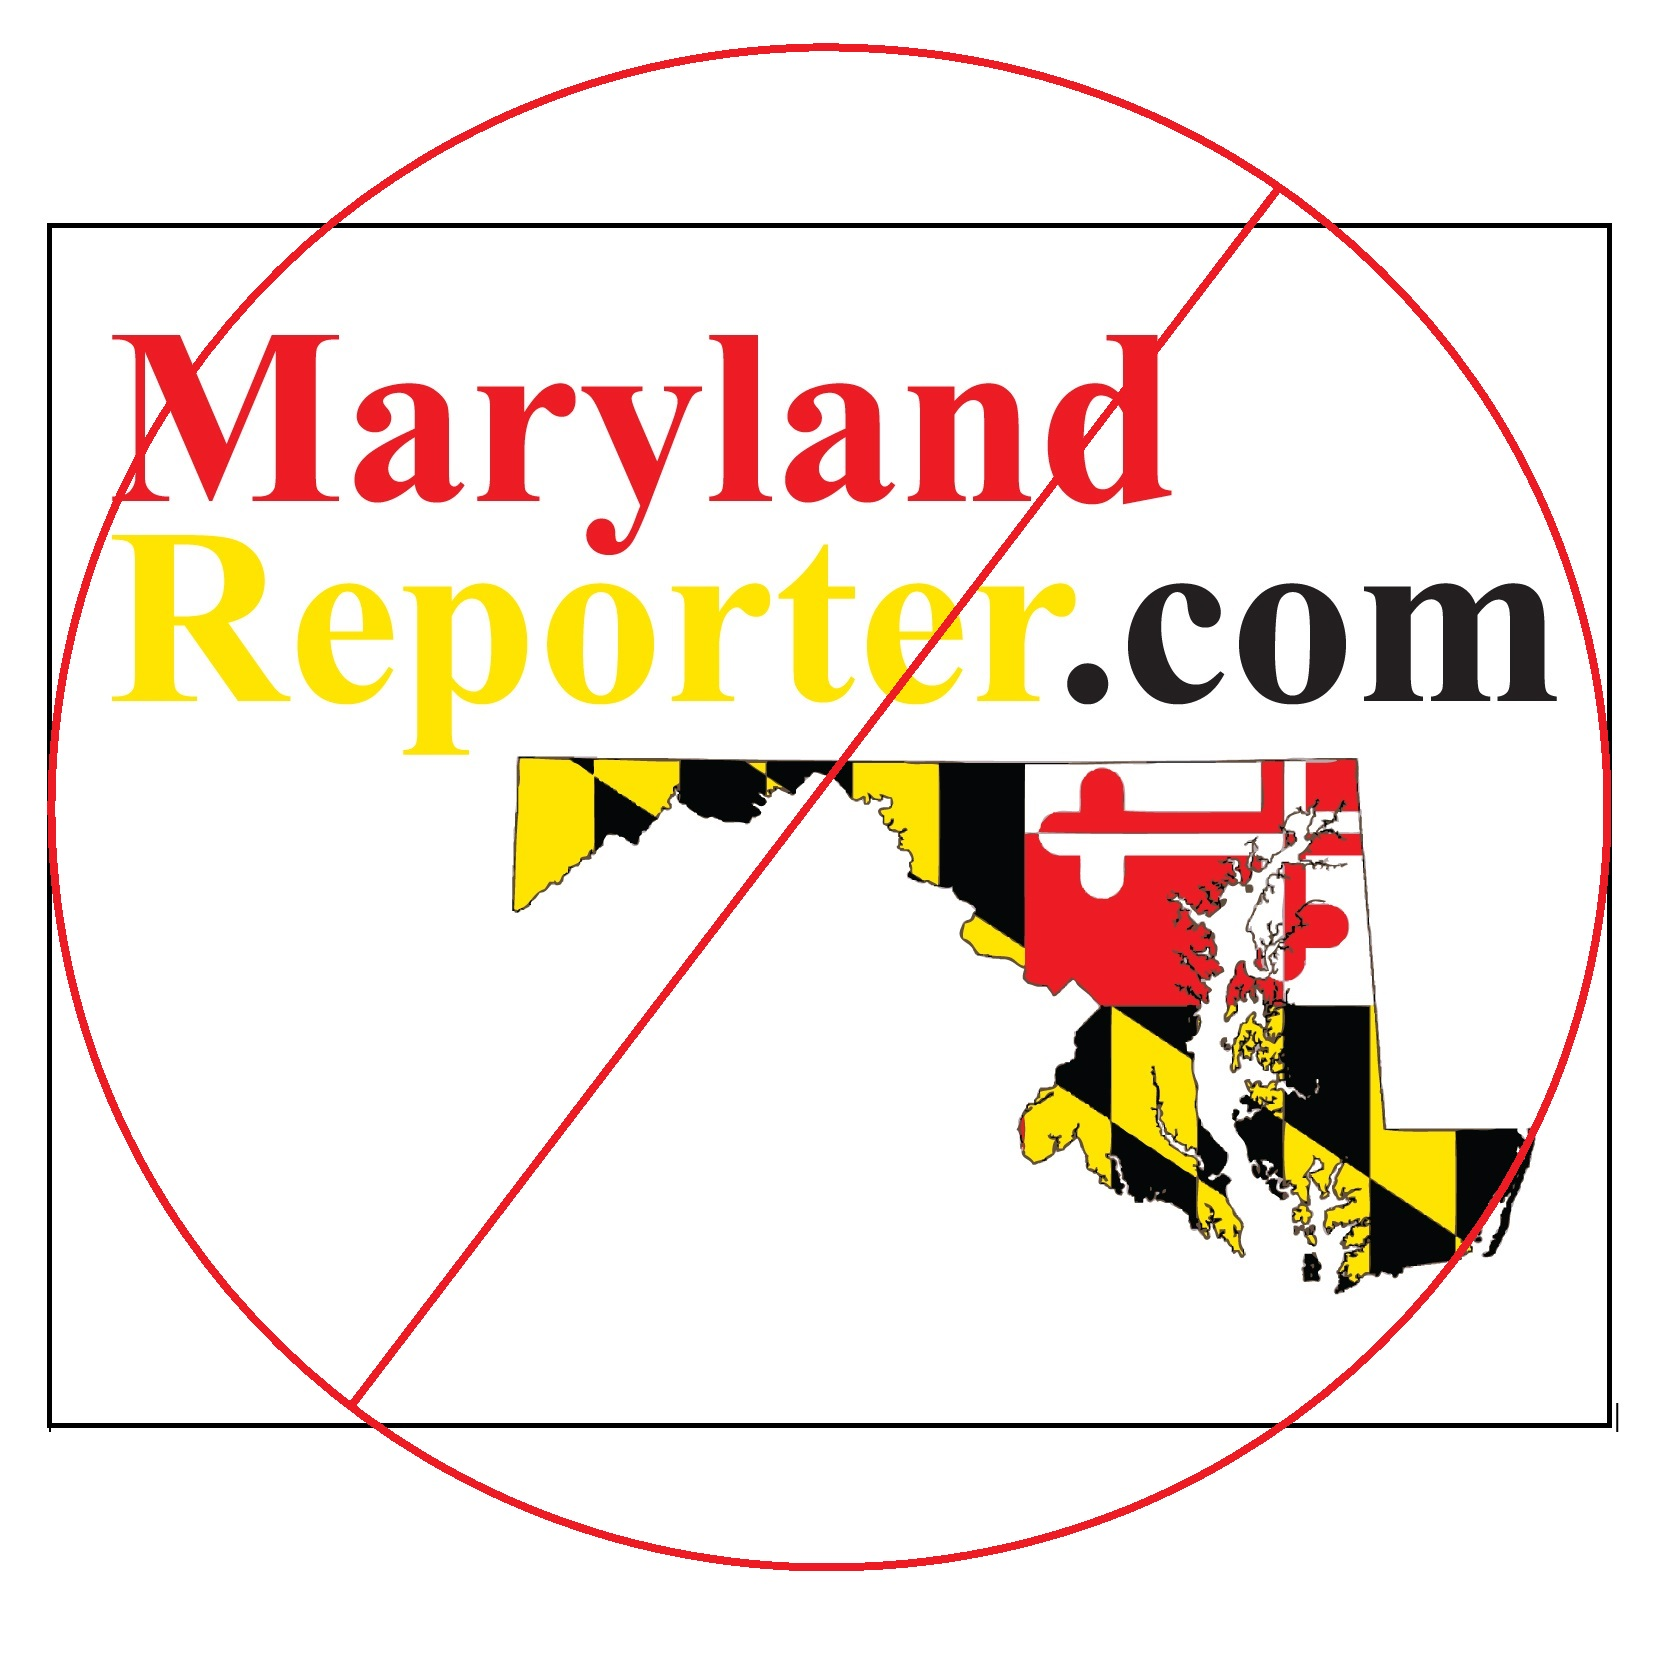 Blowback on Rascovar column was fierce; Bongino calls for boycott of Maryland Reporter